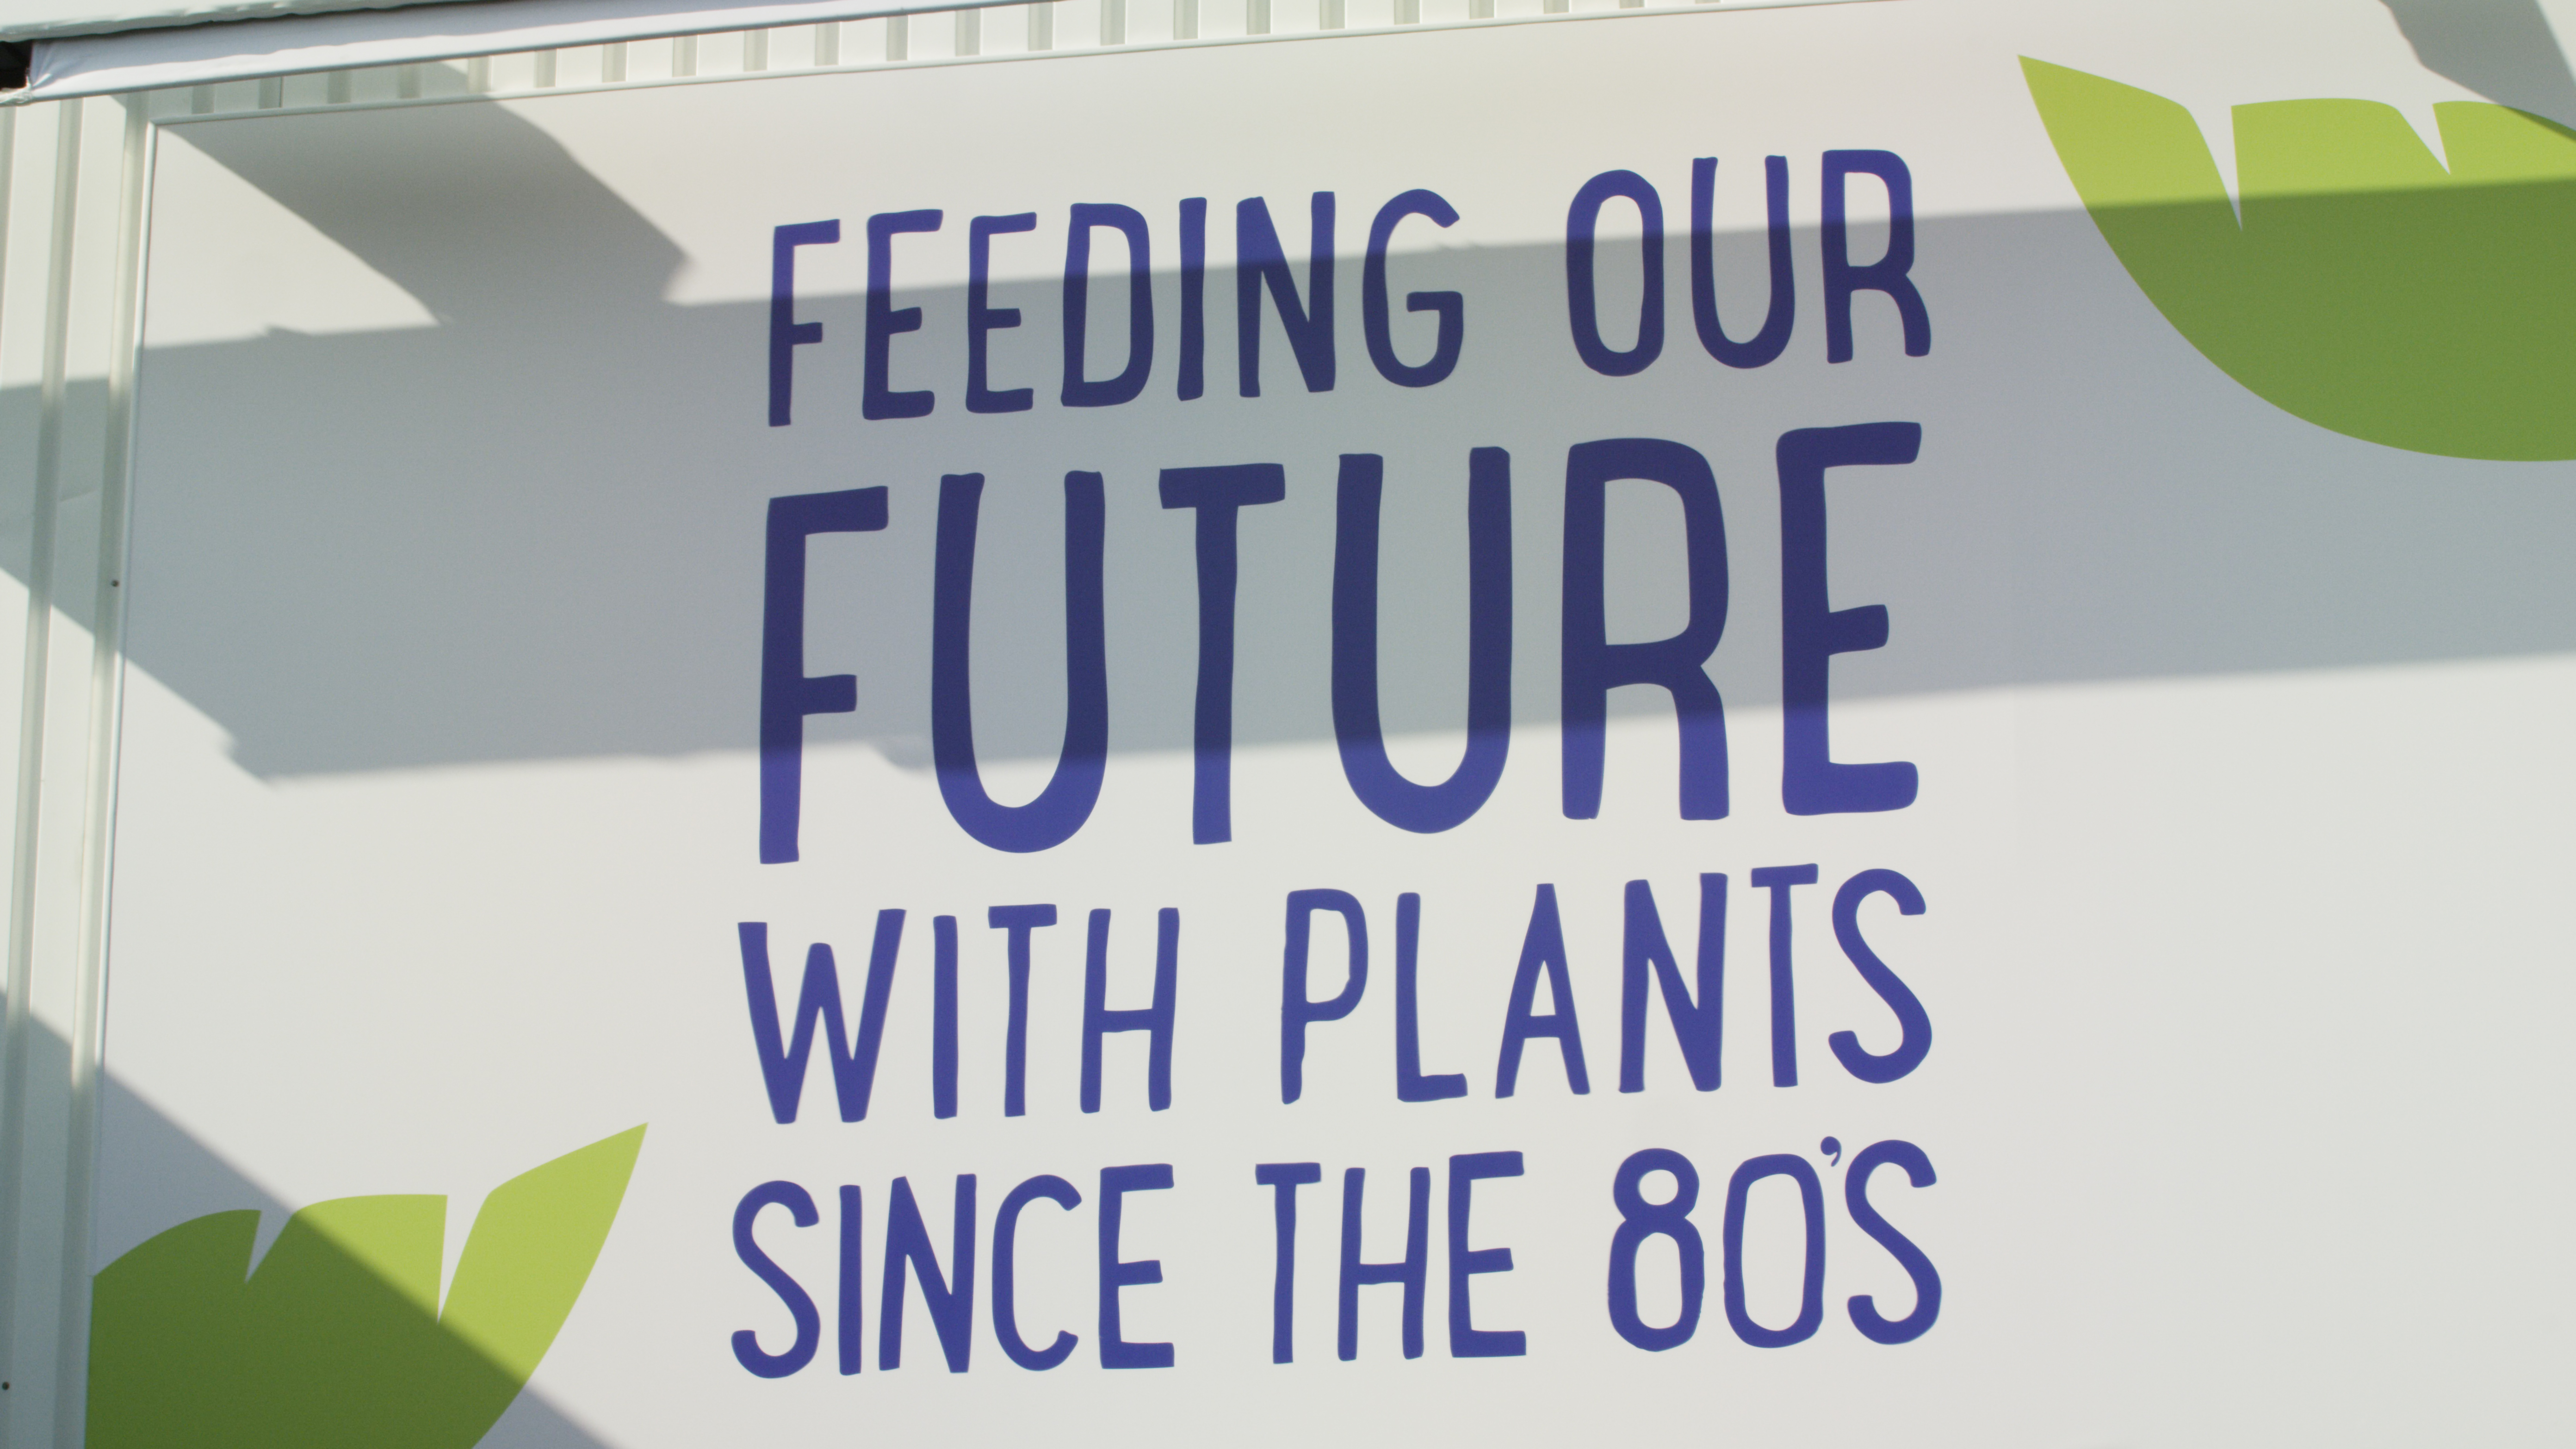 Feeding our Future with Plants